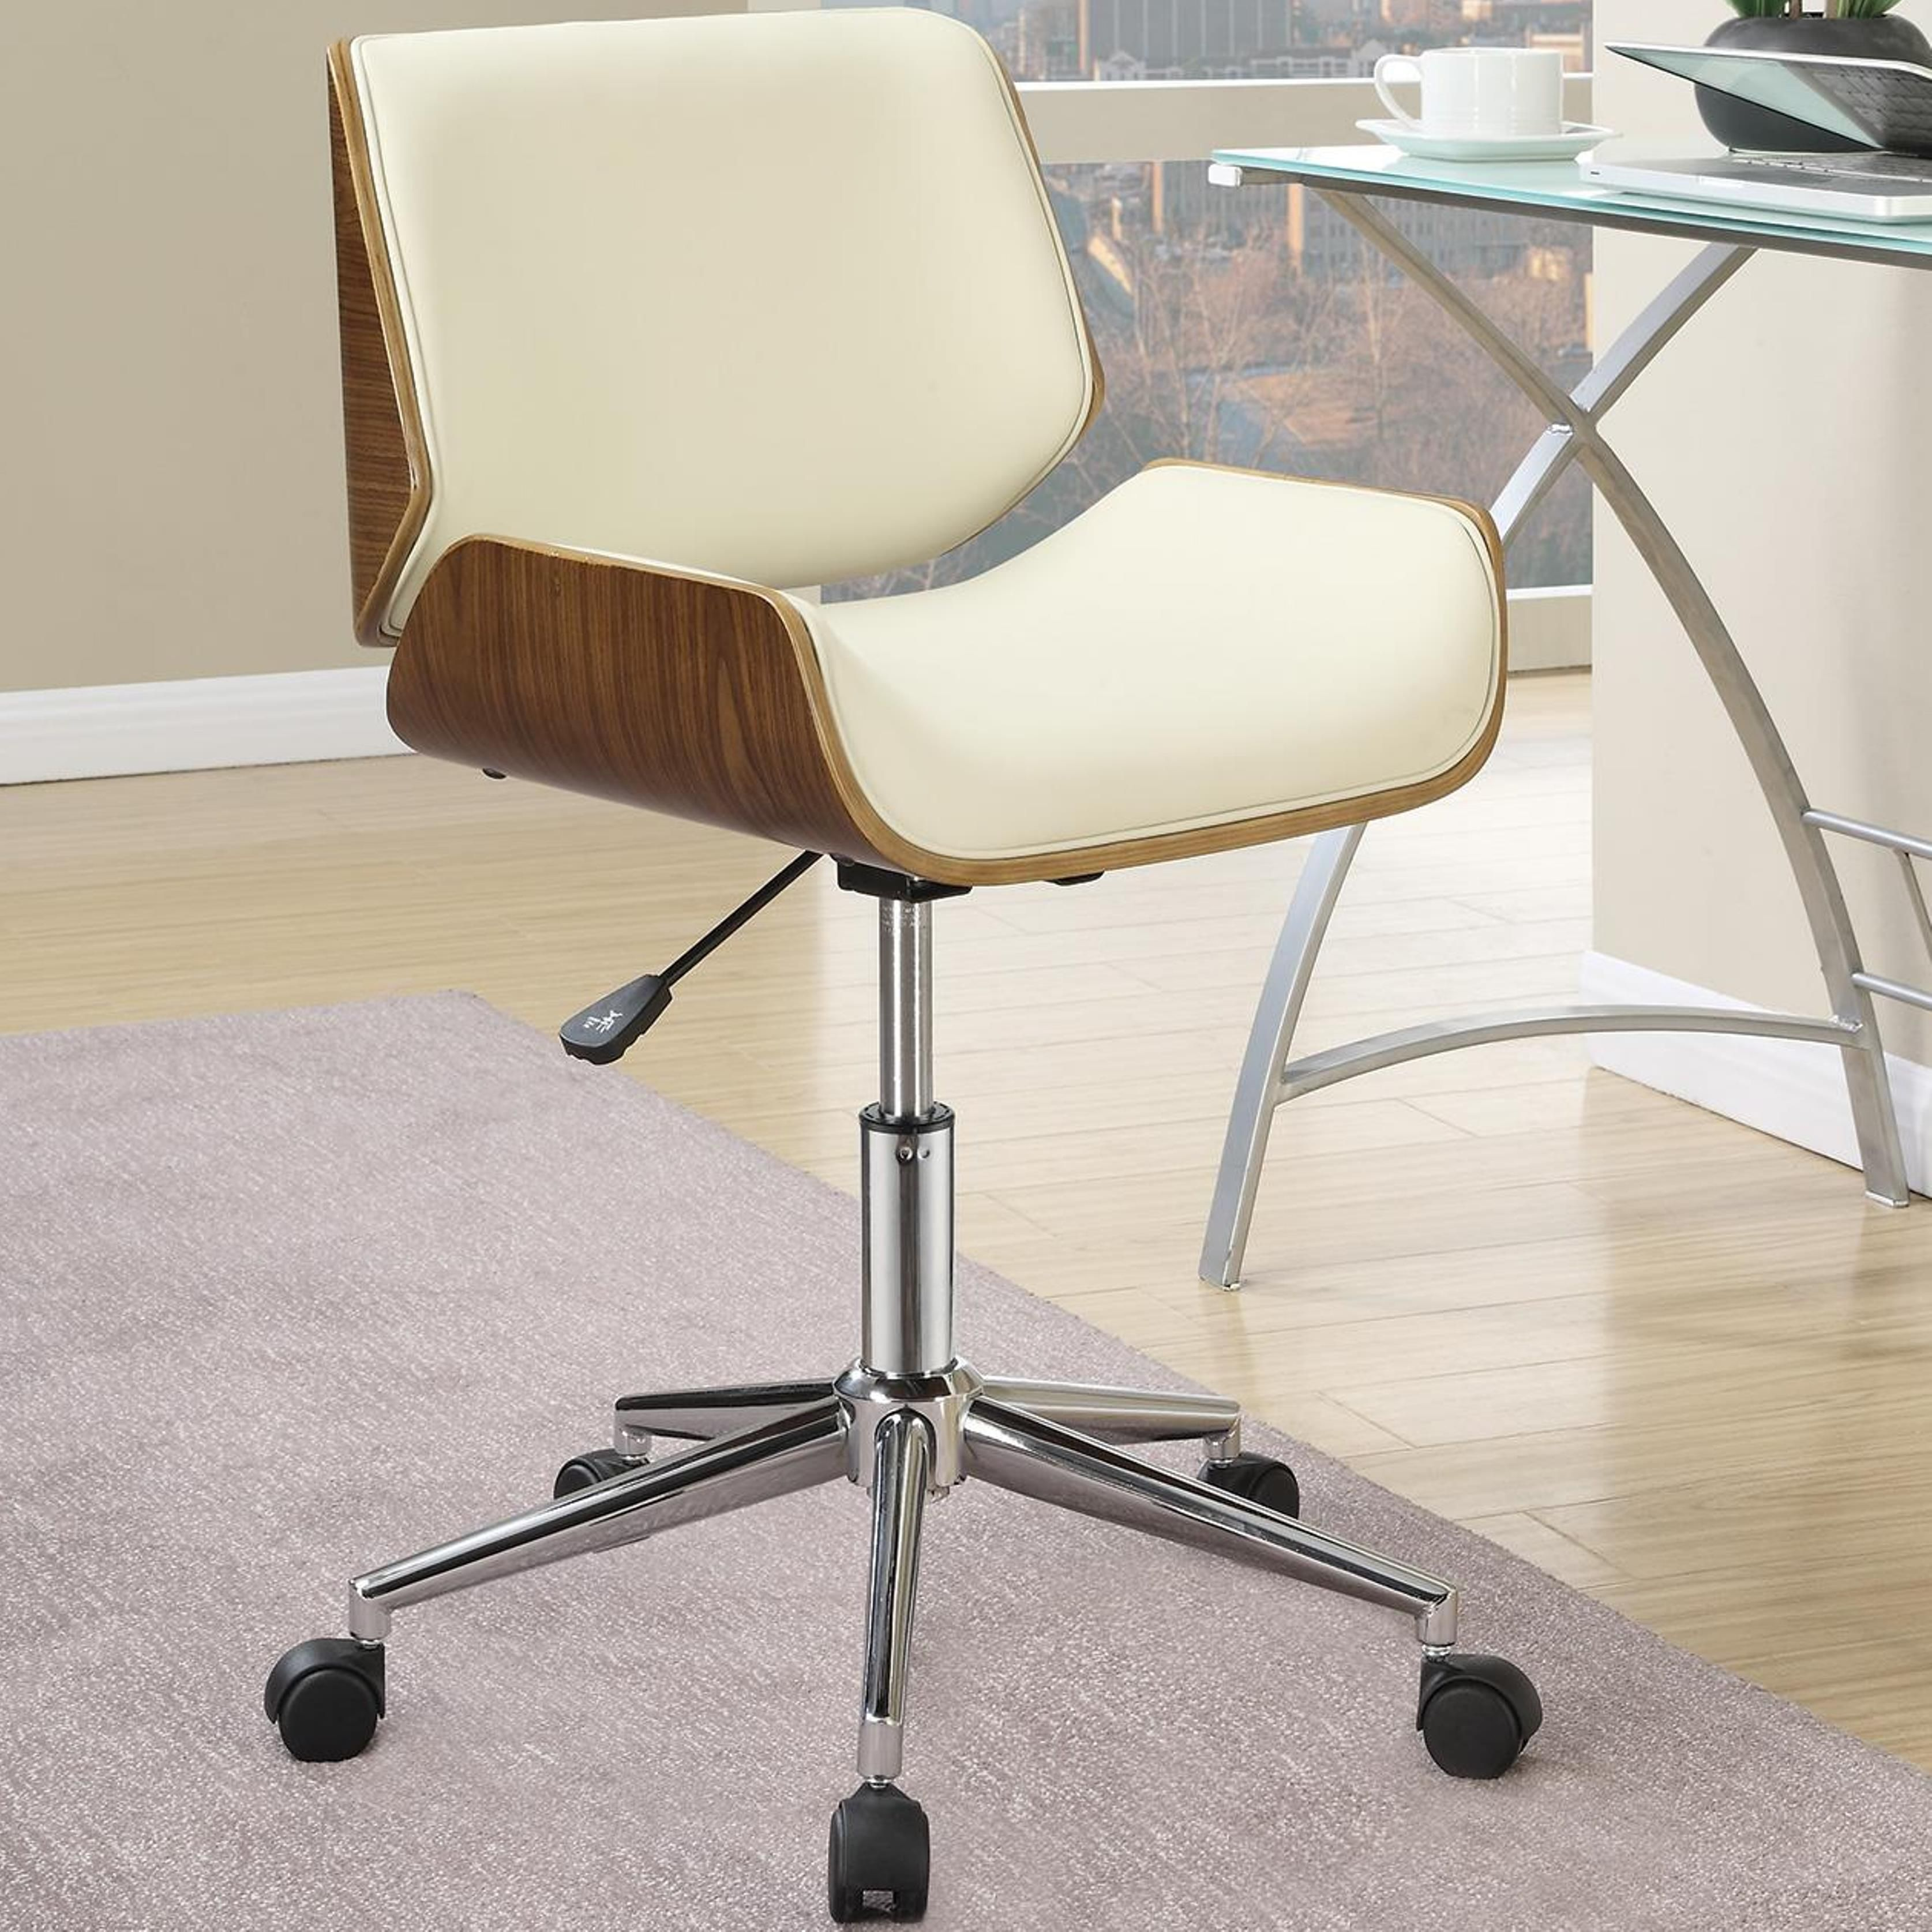 Upholstered swivel desk chair - The Back And Bottom Are Formed From Curved Wood Neatly Containing The Upholstered Cushion Swivel Office Chairoffice